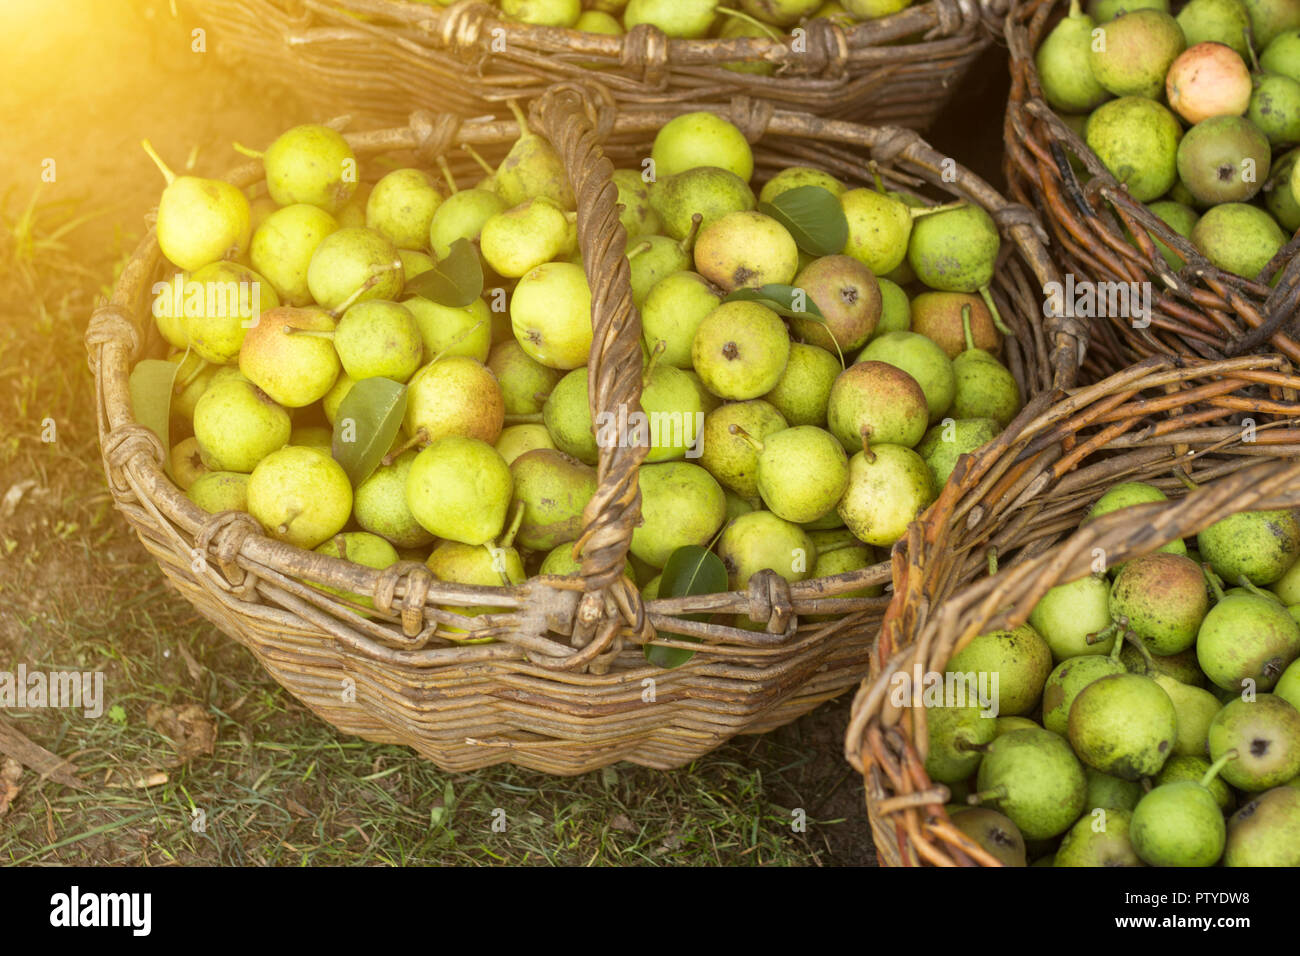 several baskets with pears standing on grass, the sun - Stock Image